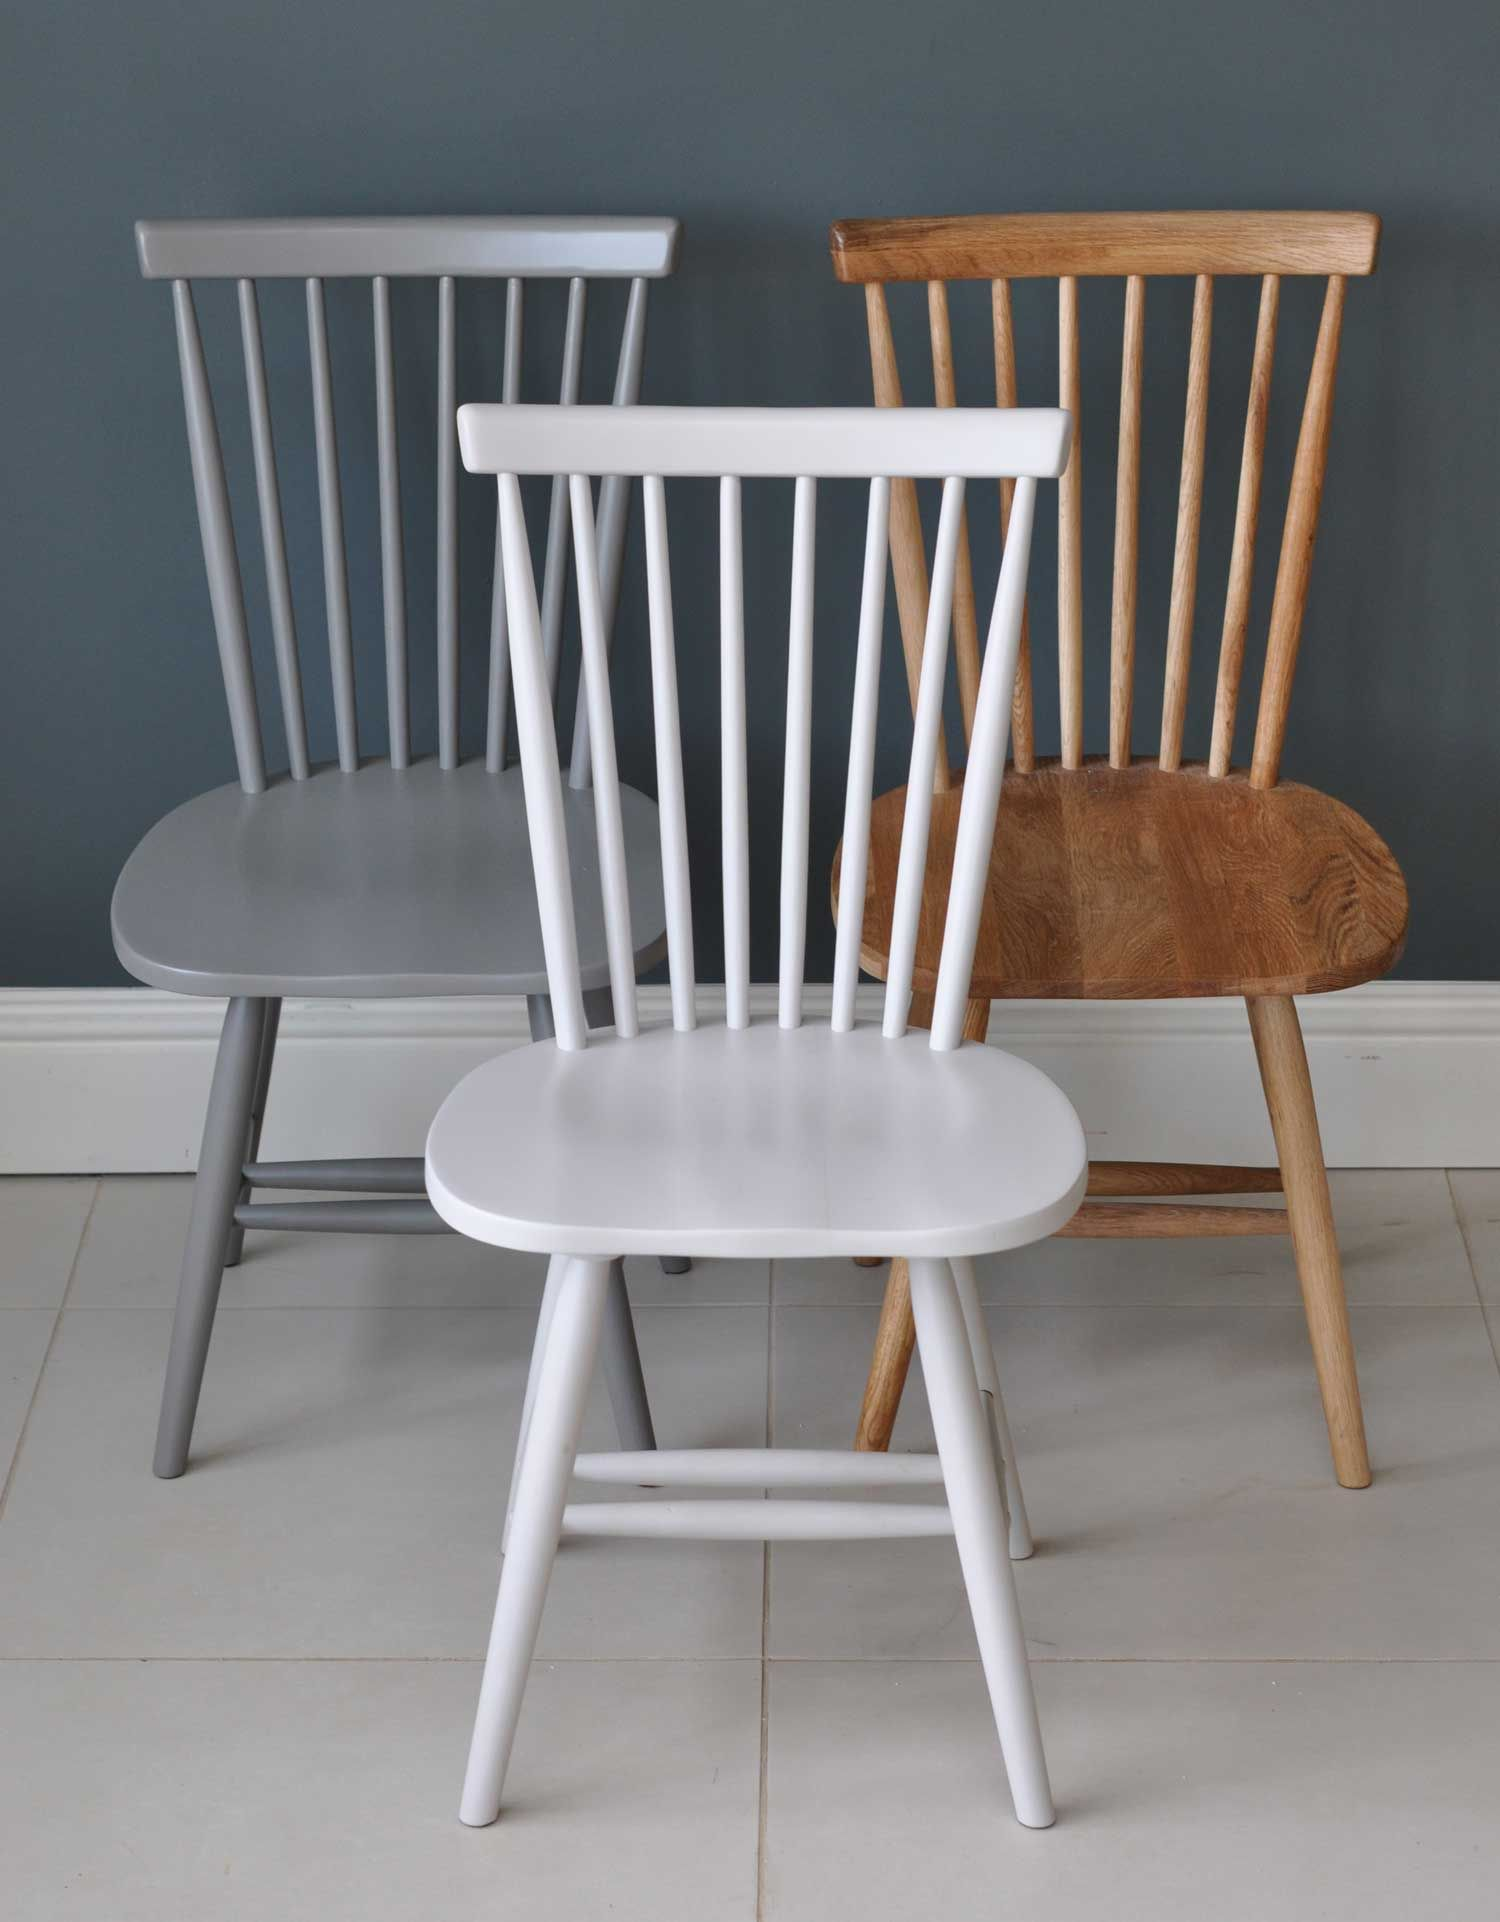 Peachy Spindle Back Valley Dining Chair Painted Or Natural Oak Pdpeps Interior Chair Design Pdpepsorg